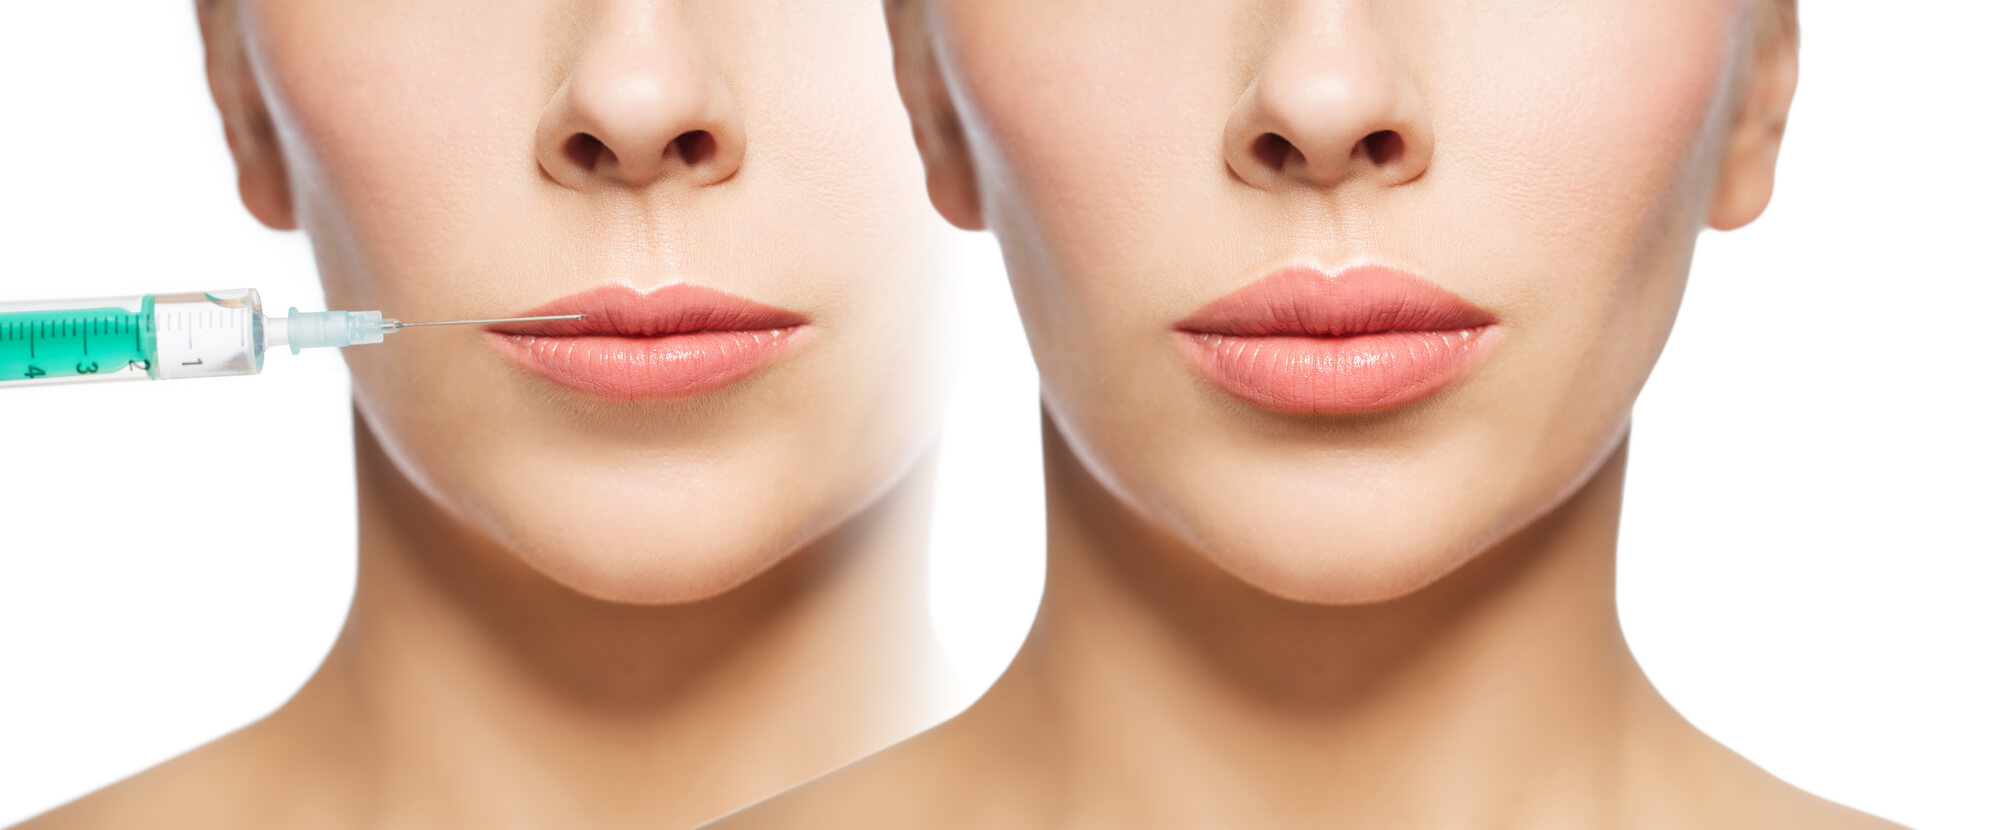 before and after lip fillers Miami